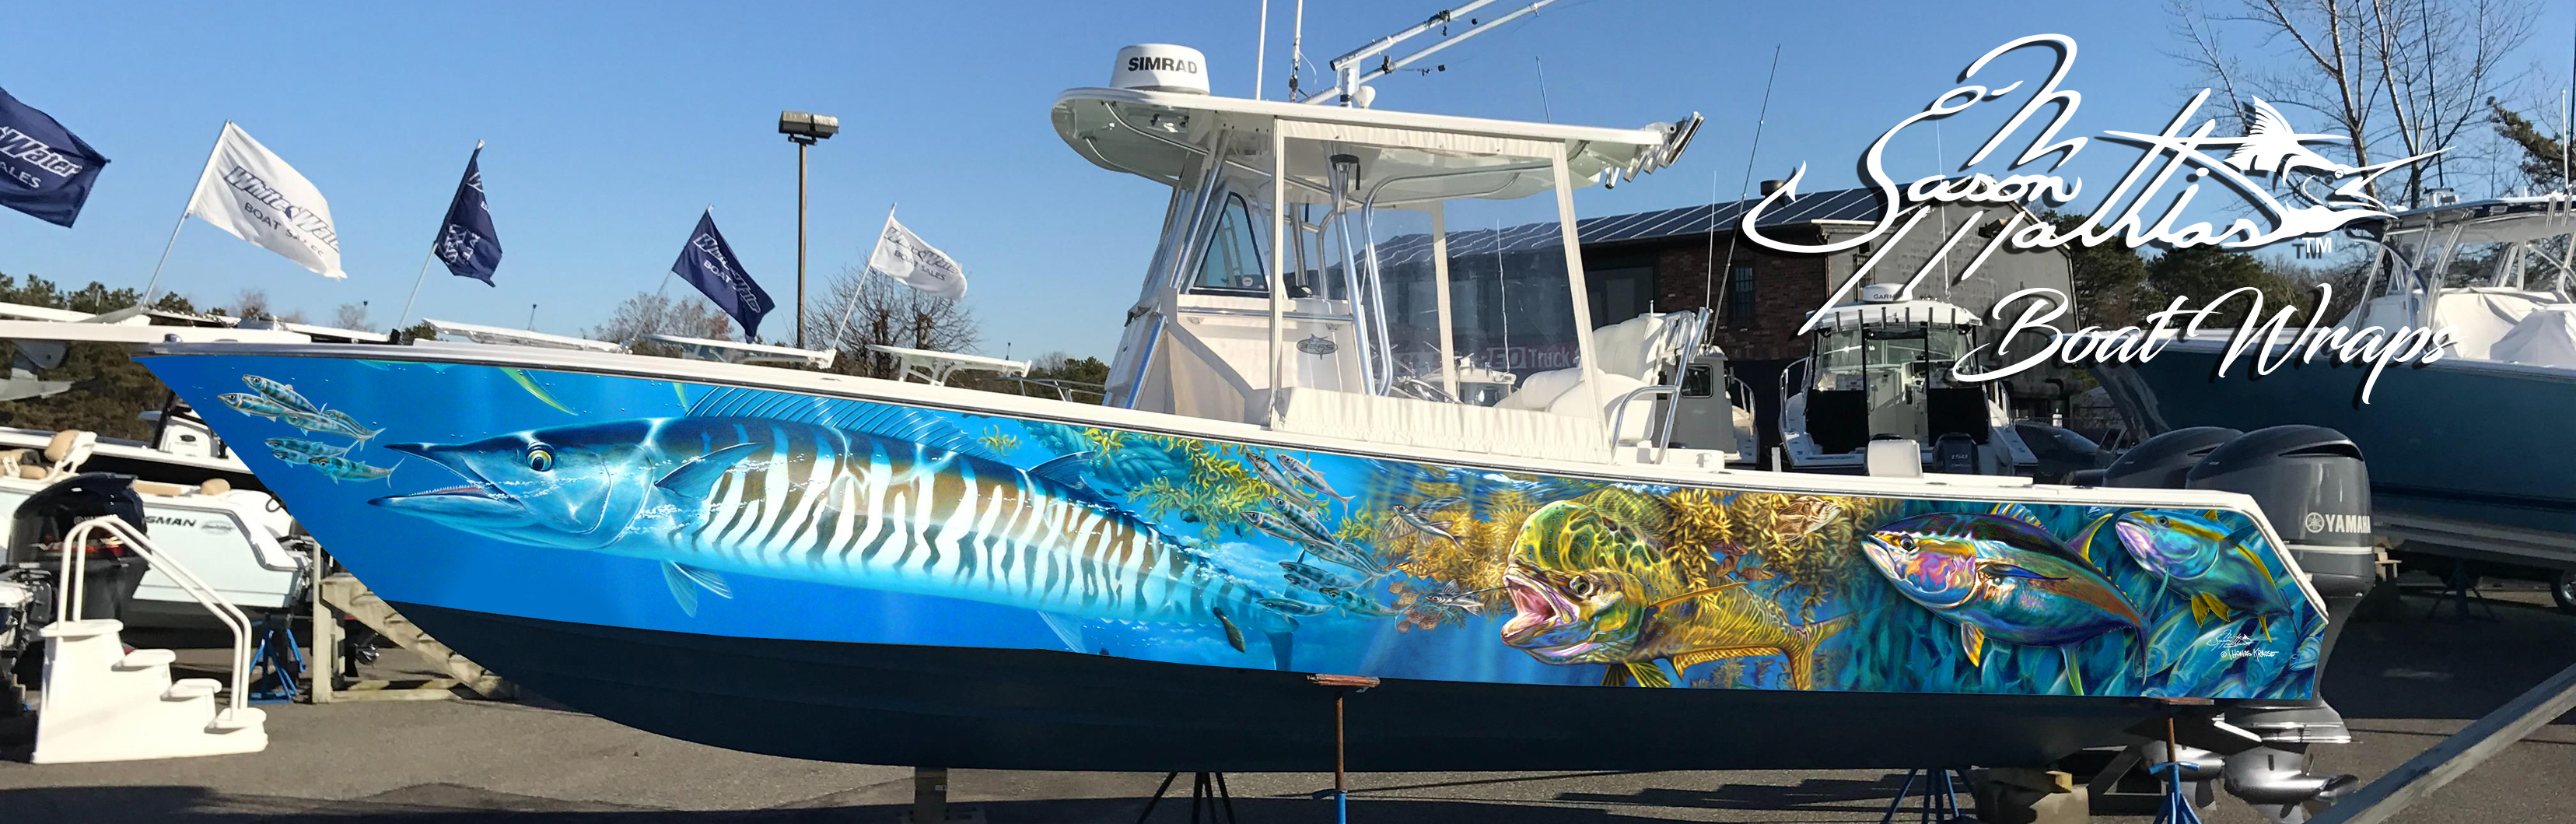 boat-wrap-designs-and-custom-art-for-top-quality-marine-grade-quality-by-jason-mathias-art.jpg